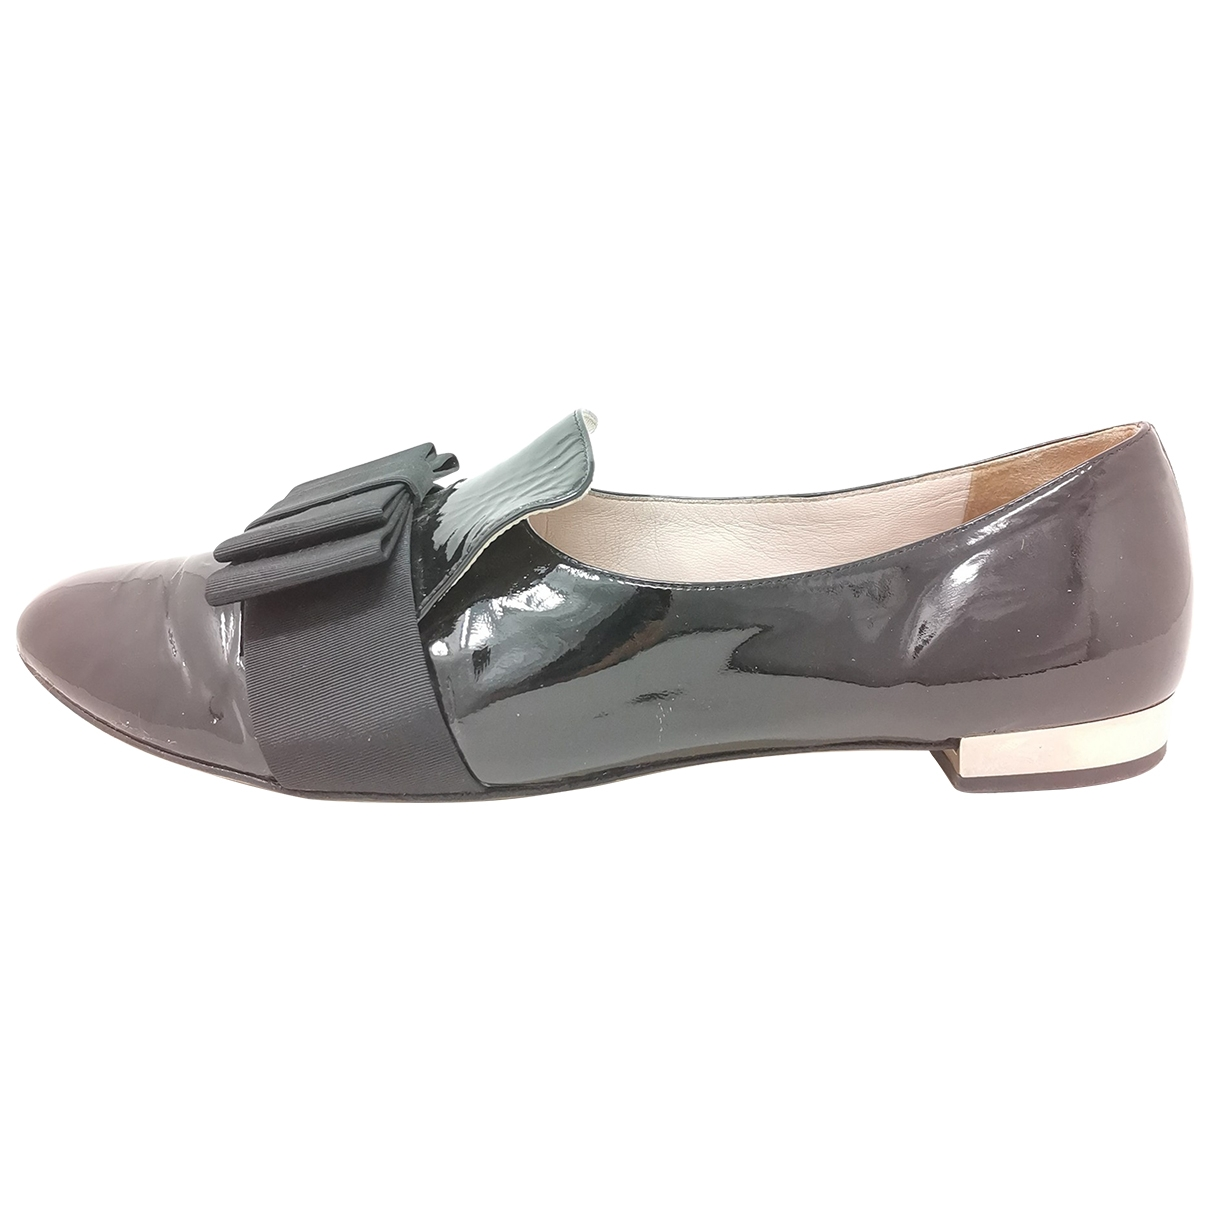 Miu Miu \N Black Patent leather Flats for Women 41 EU